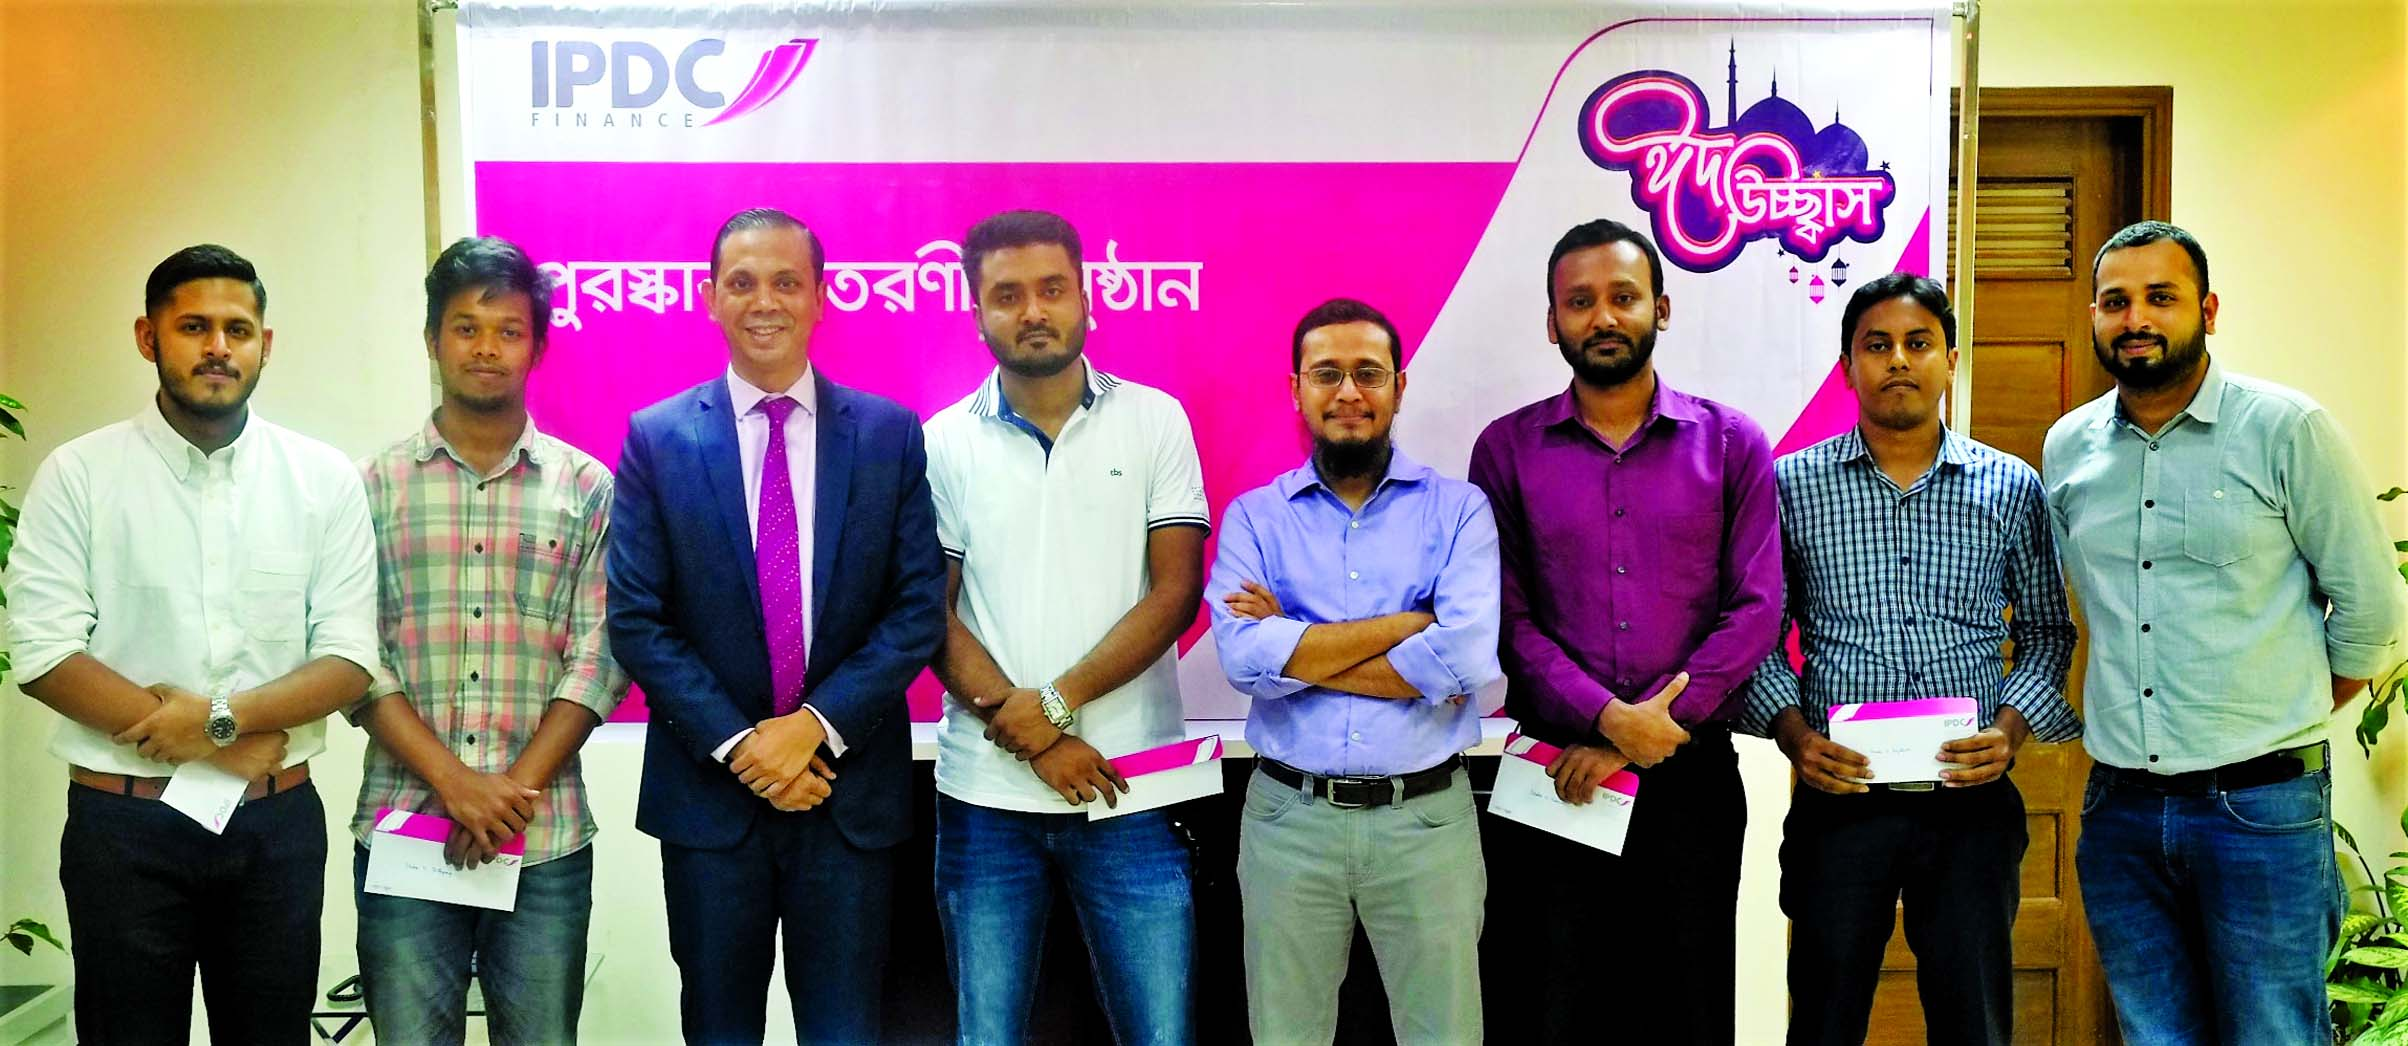 IPDC Finance Limited, recently announced the Eid Ucchash campaign winner's name. Parvin Mona (Rangpur) Faishal Ahamed (Barishal) Ziauddin Mortuza (Sylhet) Farhan Jawad (Mymensingh) Izaz Mahmood (Chittagong) Rafsun Rafique (Khulna) and Iftakharul Alam from Rajshahi districts were win the programme.